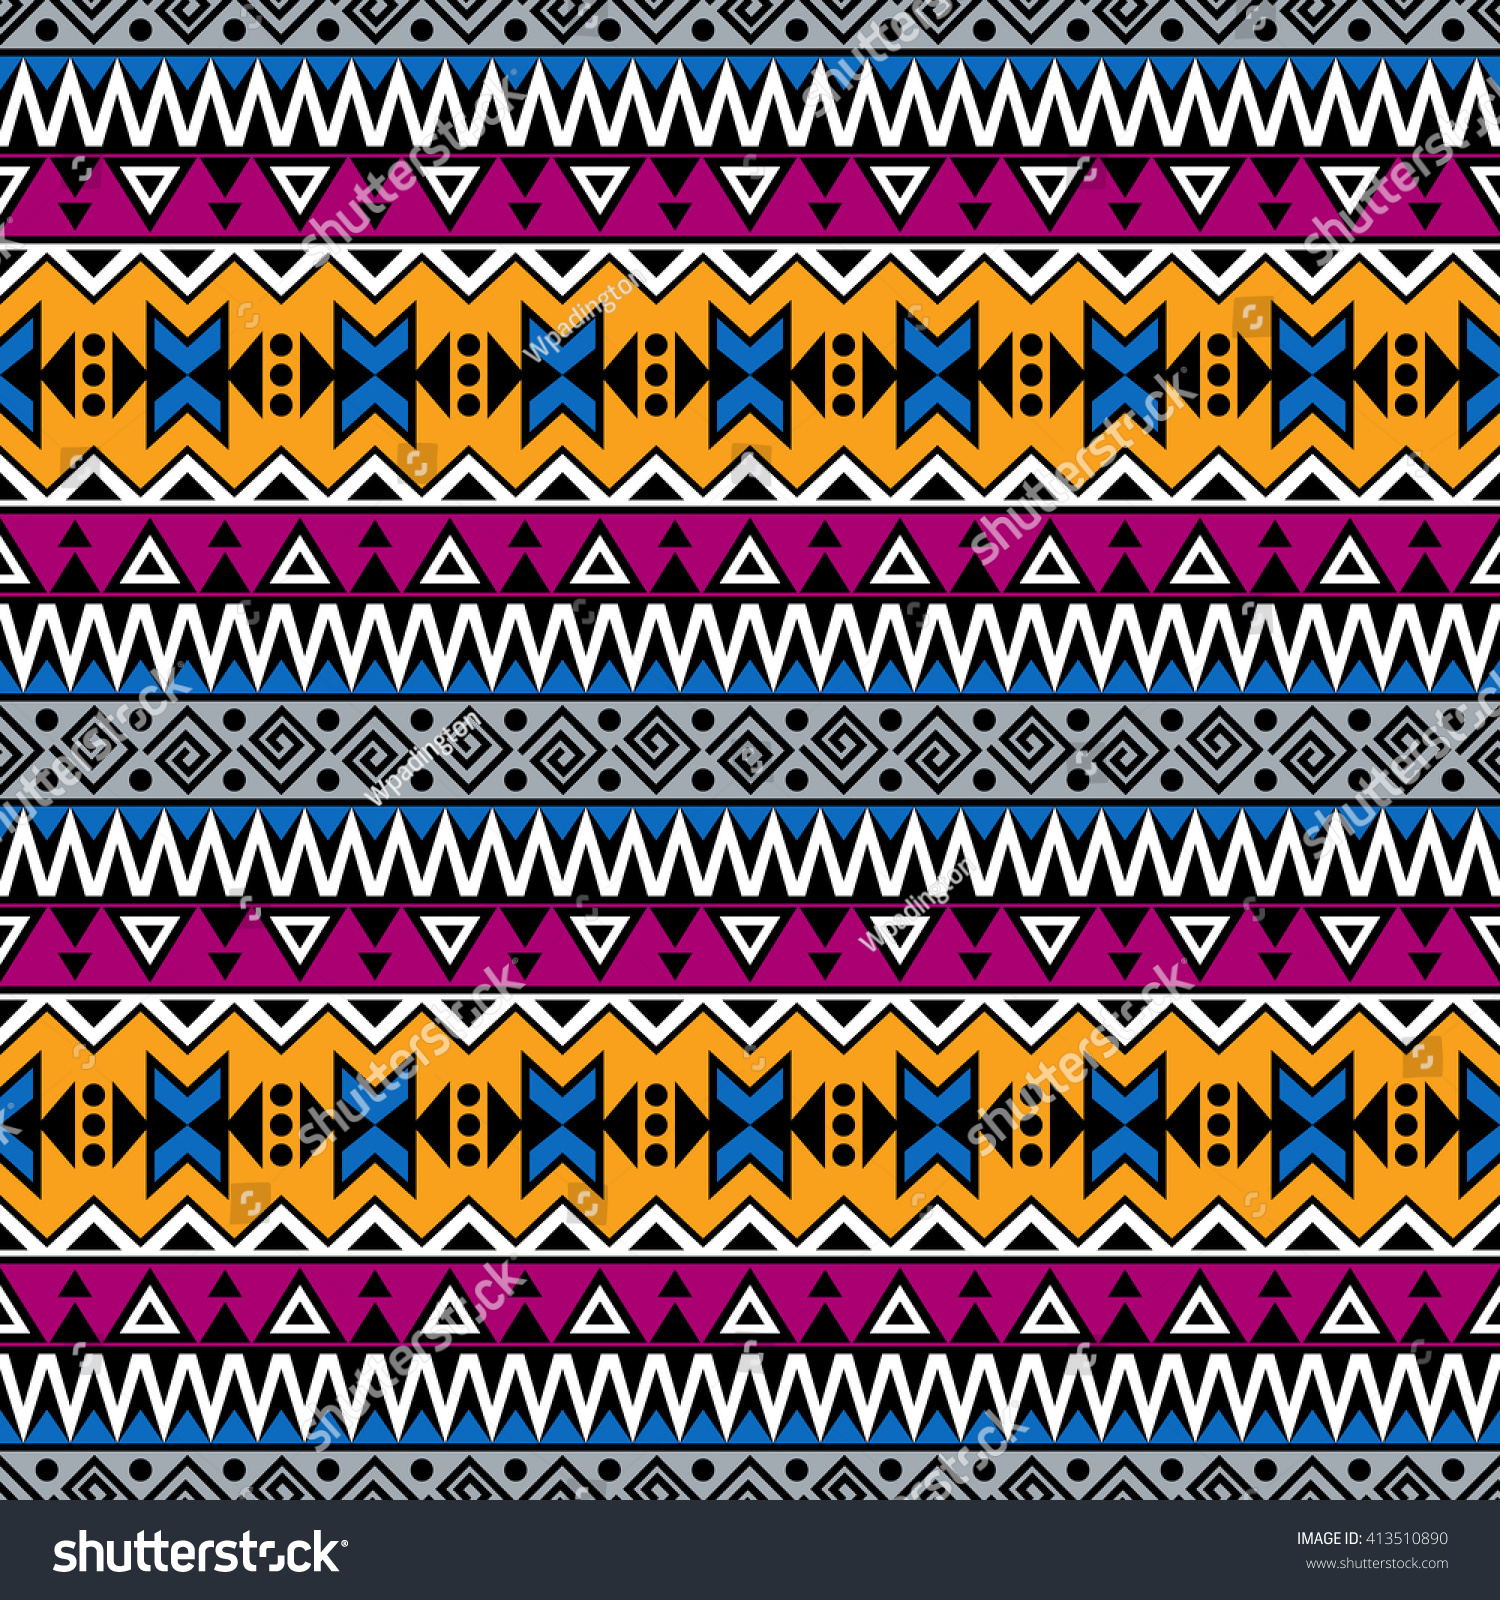 Background geometric mexican patterns seamless vector zigzag maya - Abstract Seamless Pattern In Boho Style Vector Wallpaper With Ethnic Aztec Ornament Aztec Pattern